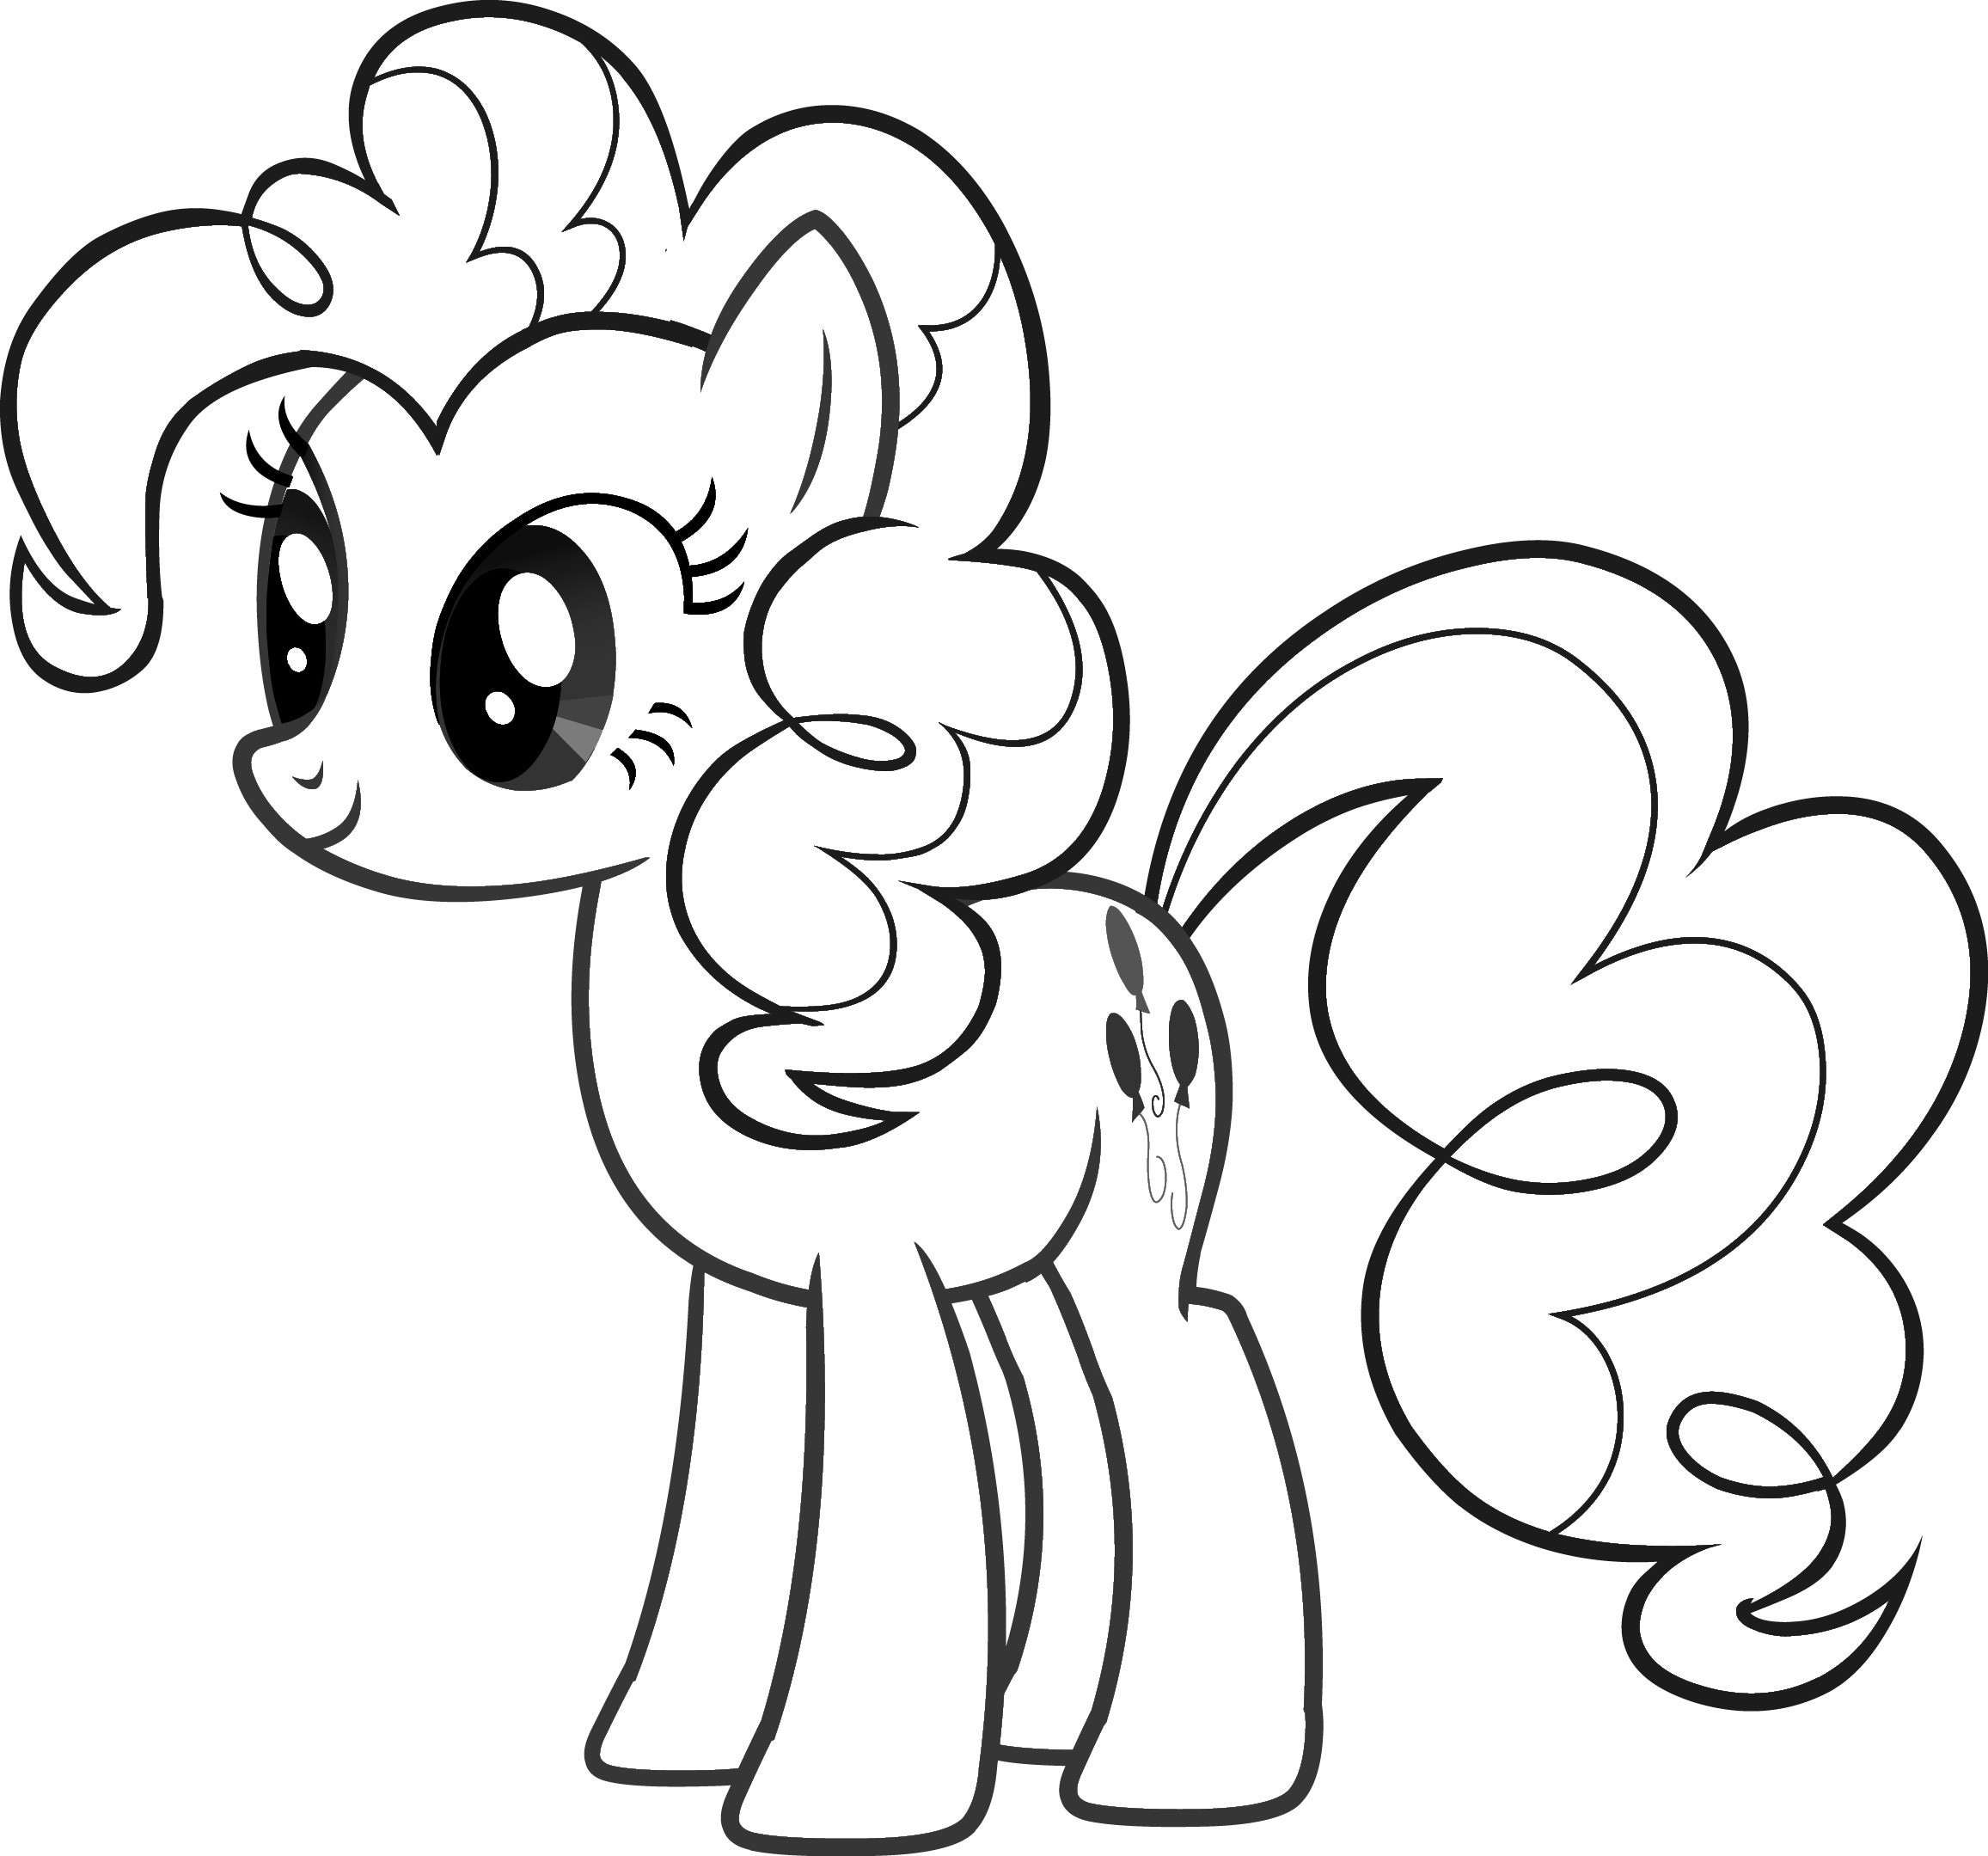 Free Printable Coloring Sheets For Girls  My little pony coloring pages